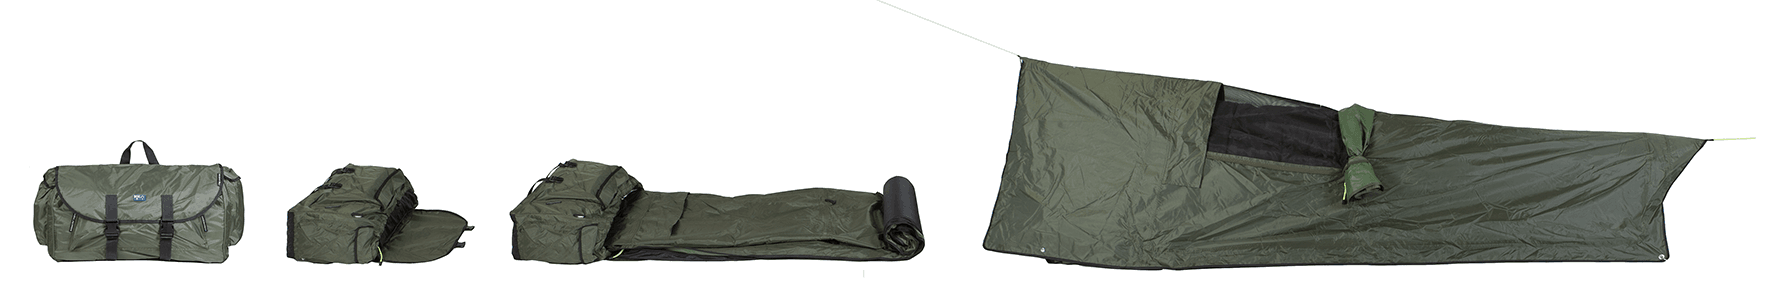 All Weather Backpack Bed horizontal-min